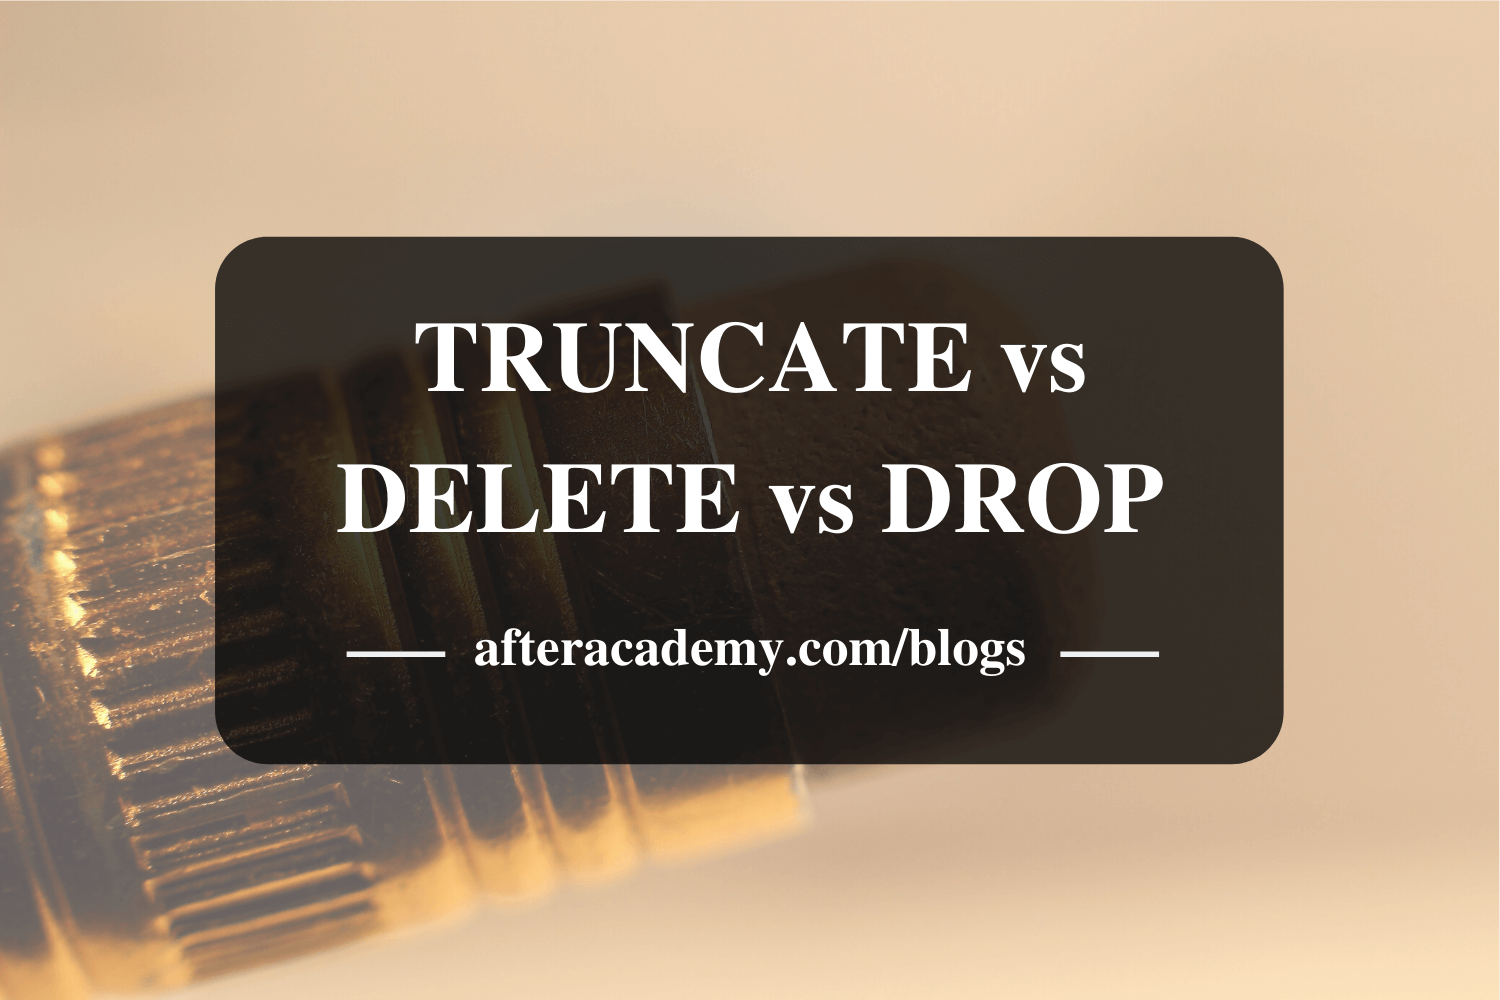 What is the difference between TRUNCATE, DELETE and DROP statements?